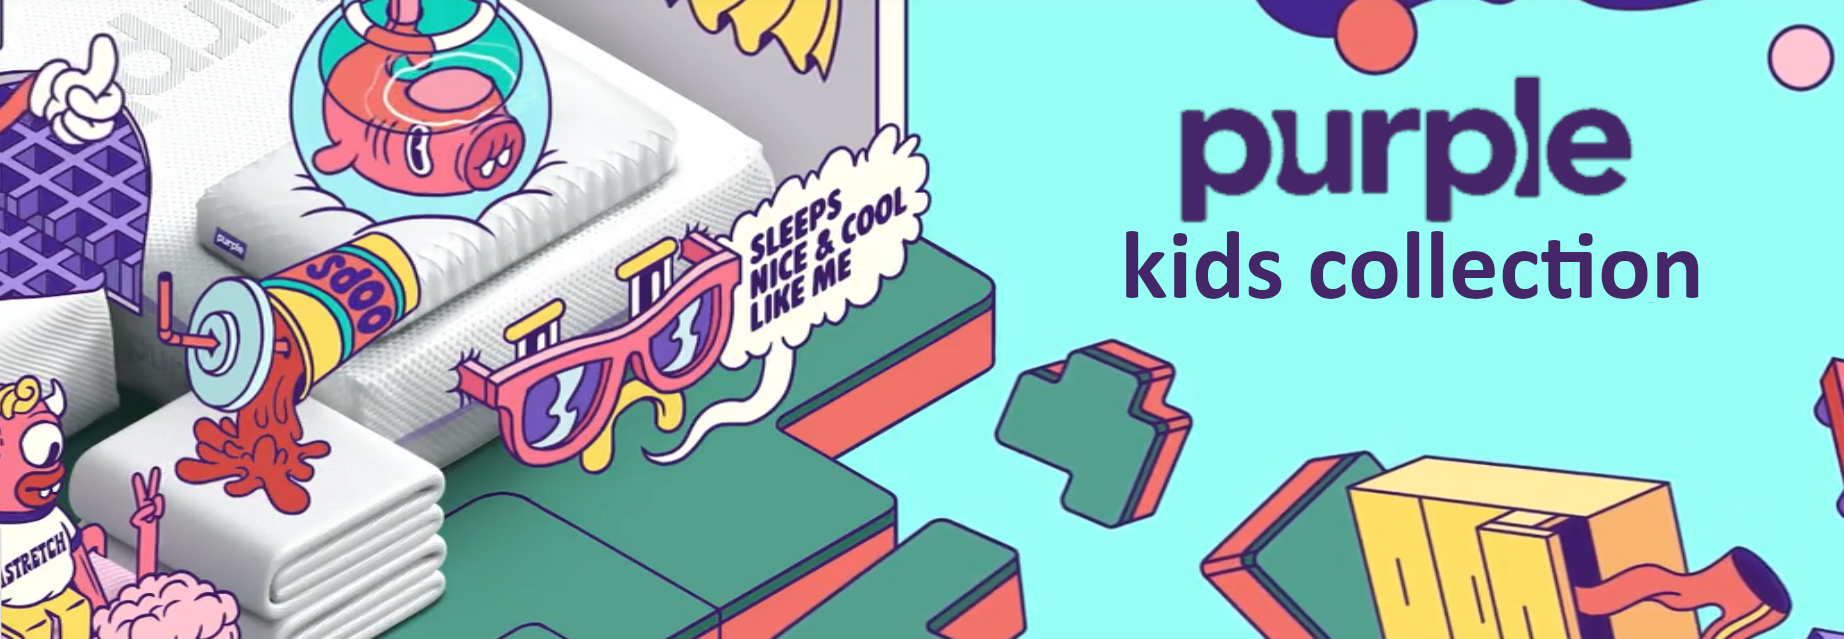 purple bed collection for kids